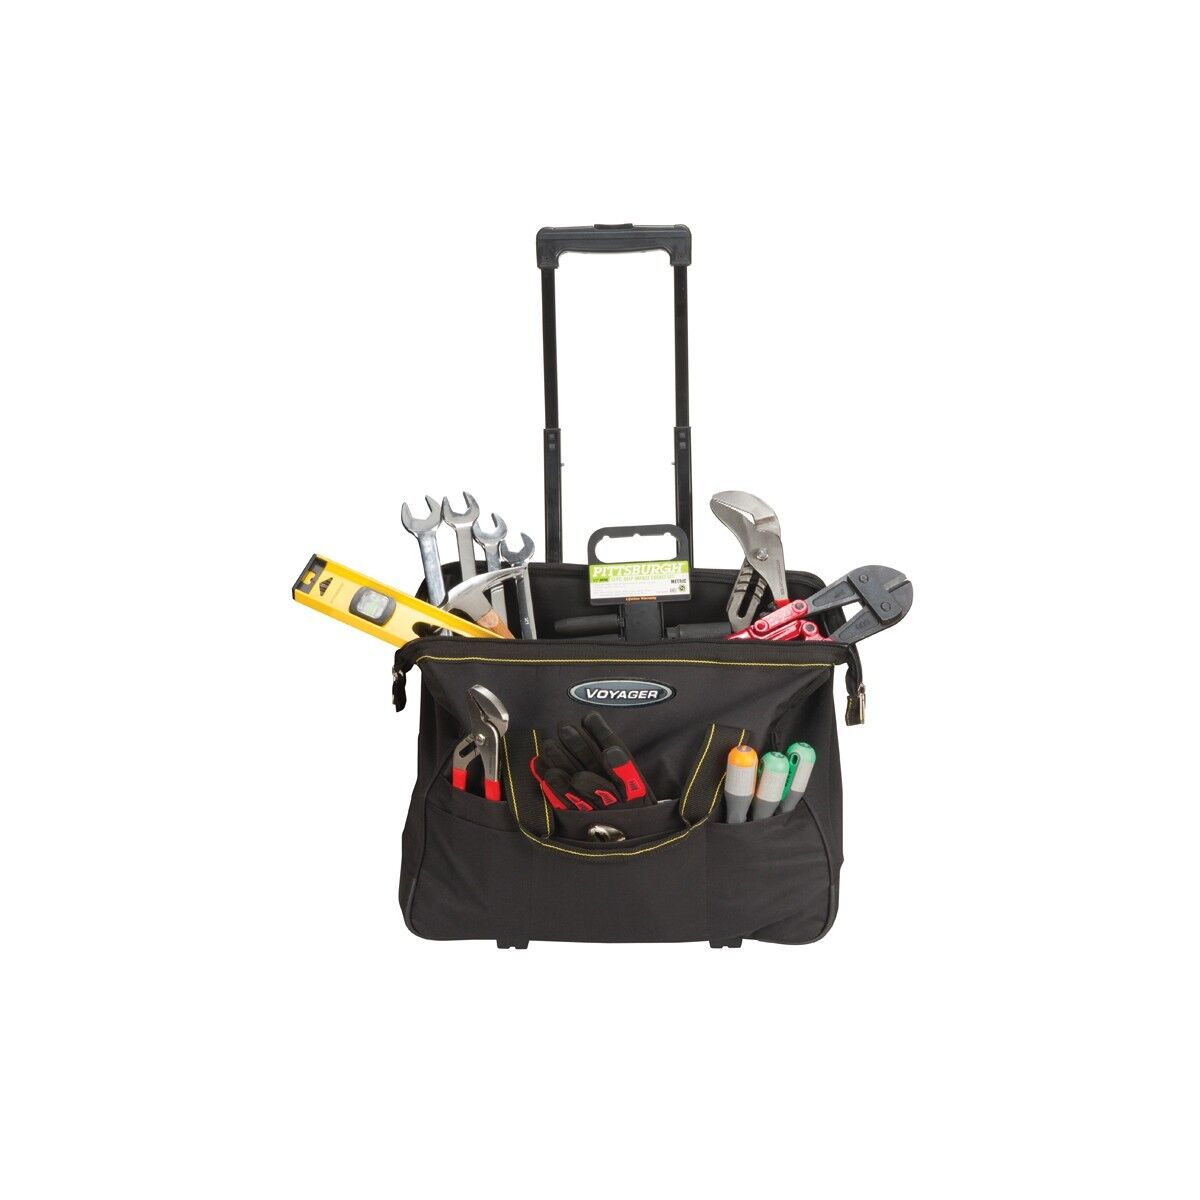 20 Inch Rolling Tool Bag Organizer Storage Tools Travel Bag Roller With Handle